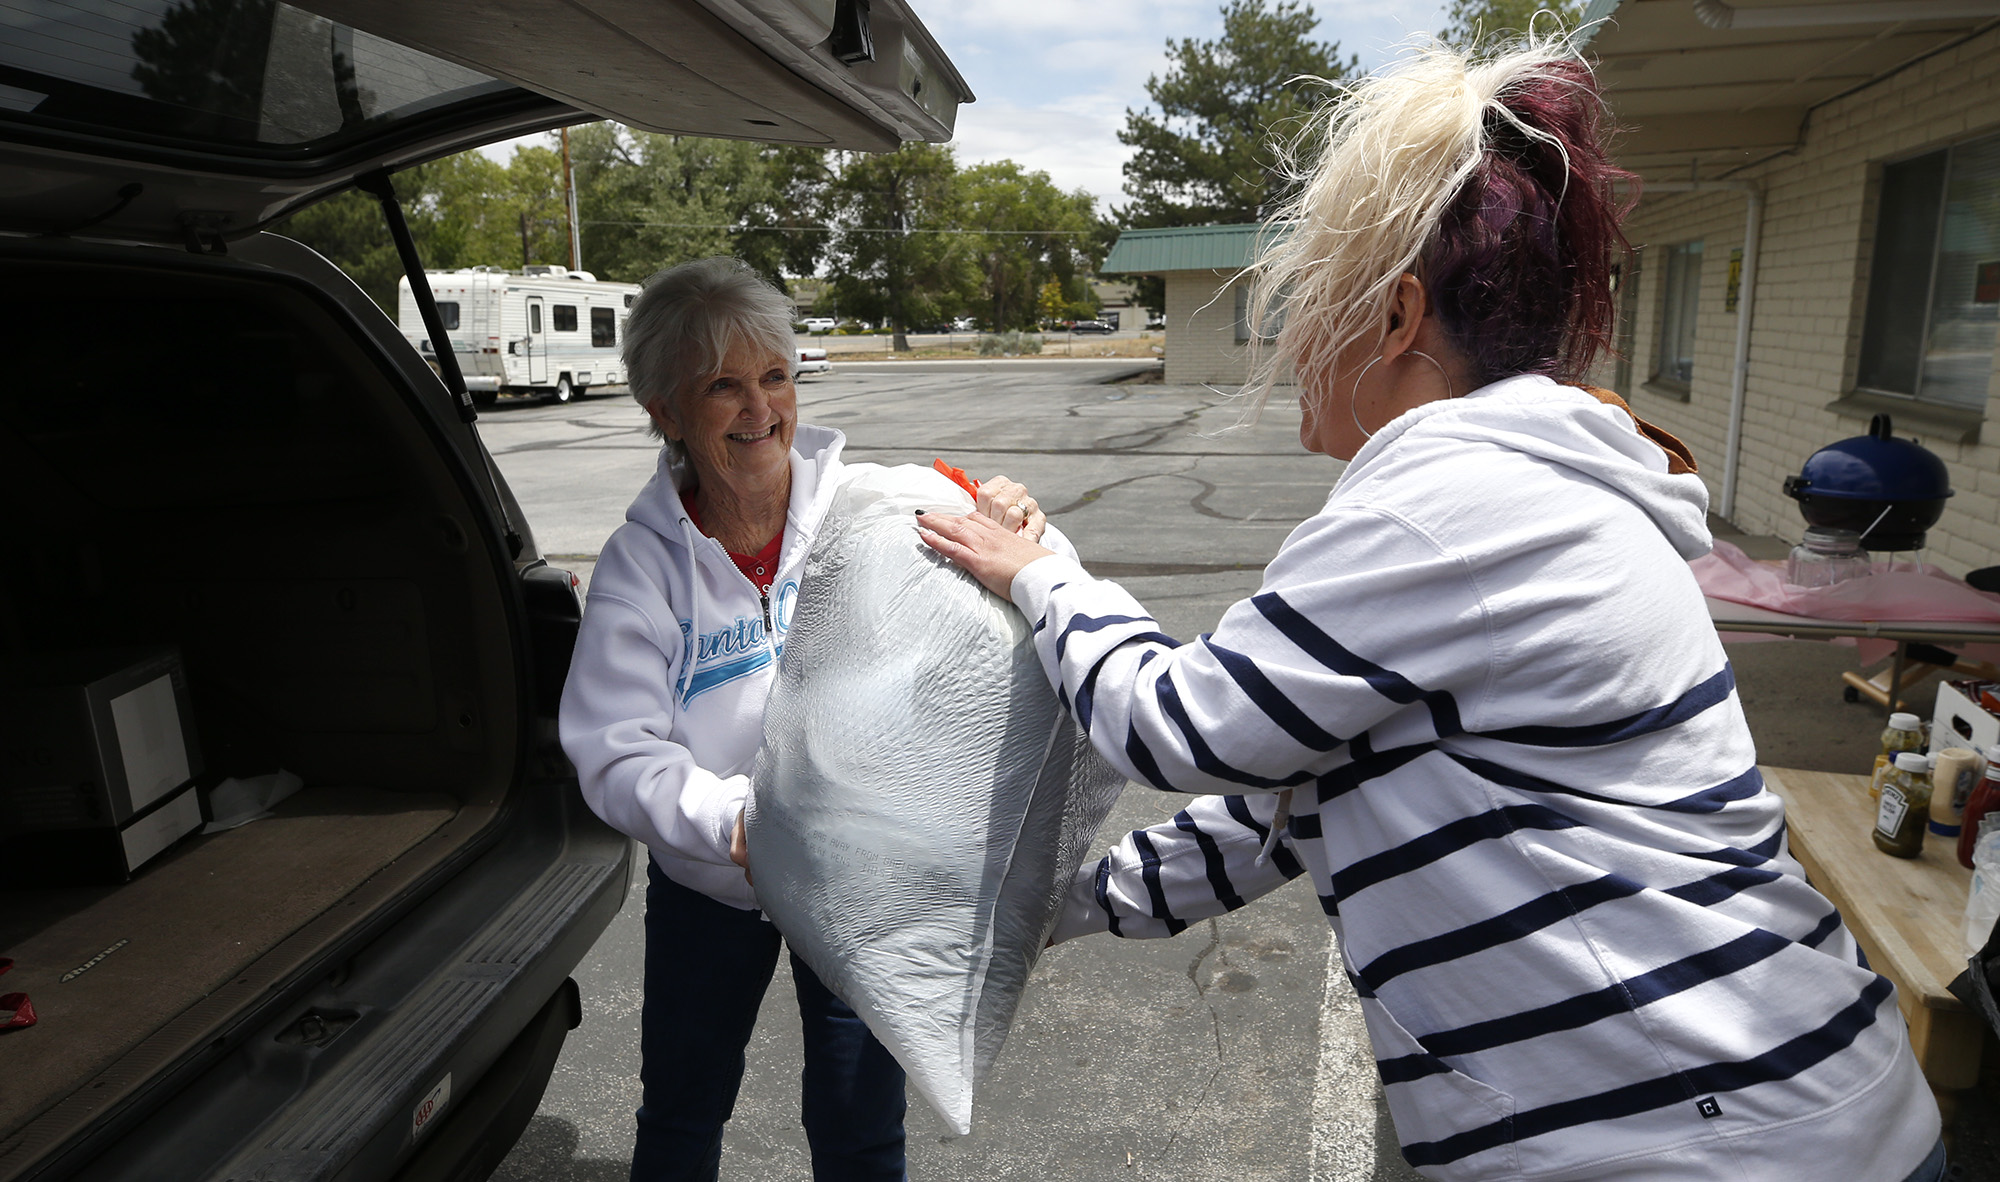 Pam France drops off donations to Jodi Miller at the rummage sale benefitting Lighthouse Lodge, in Carson City, Nev., on Saturday, June 13, 2020. Organizers hold a weekly BBQ and ongoing rummage sale to raise funds for creating a re-entry program for Carson City women being released from incarceration.  Photo by Cathleen Allison